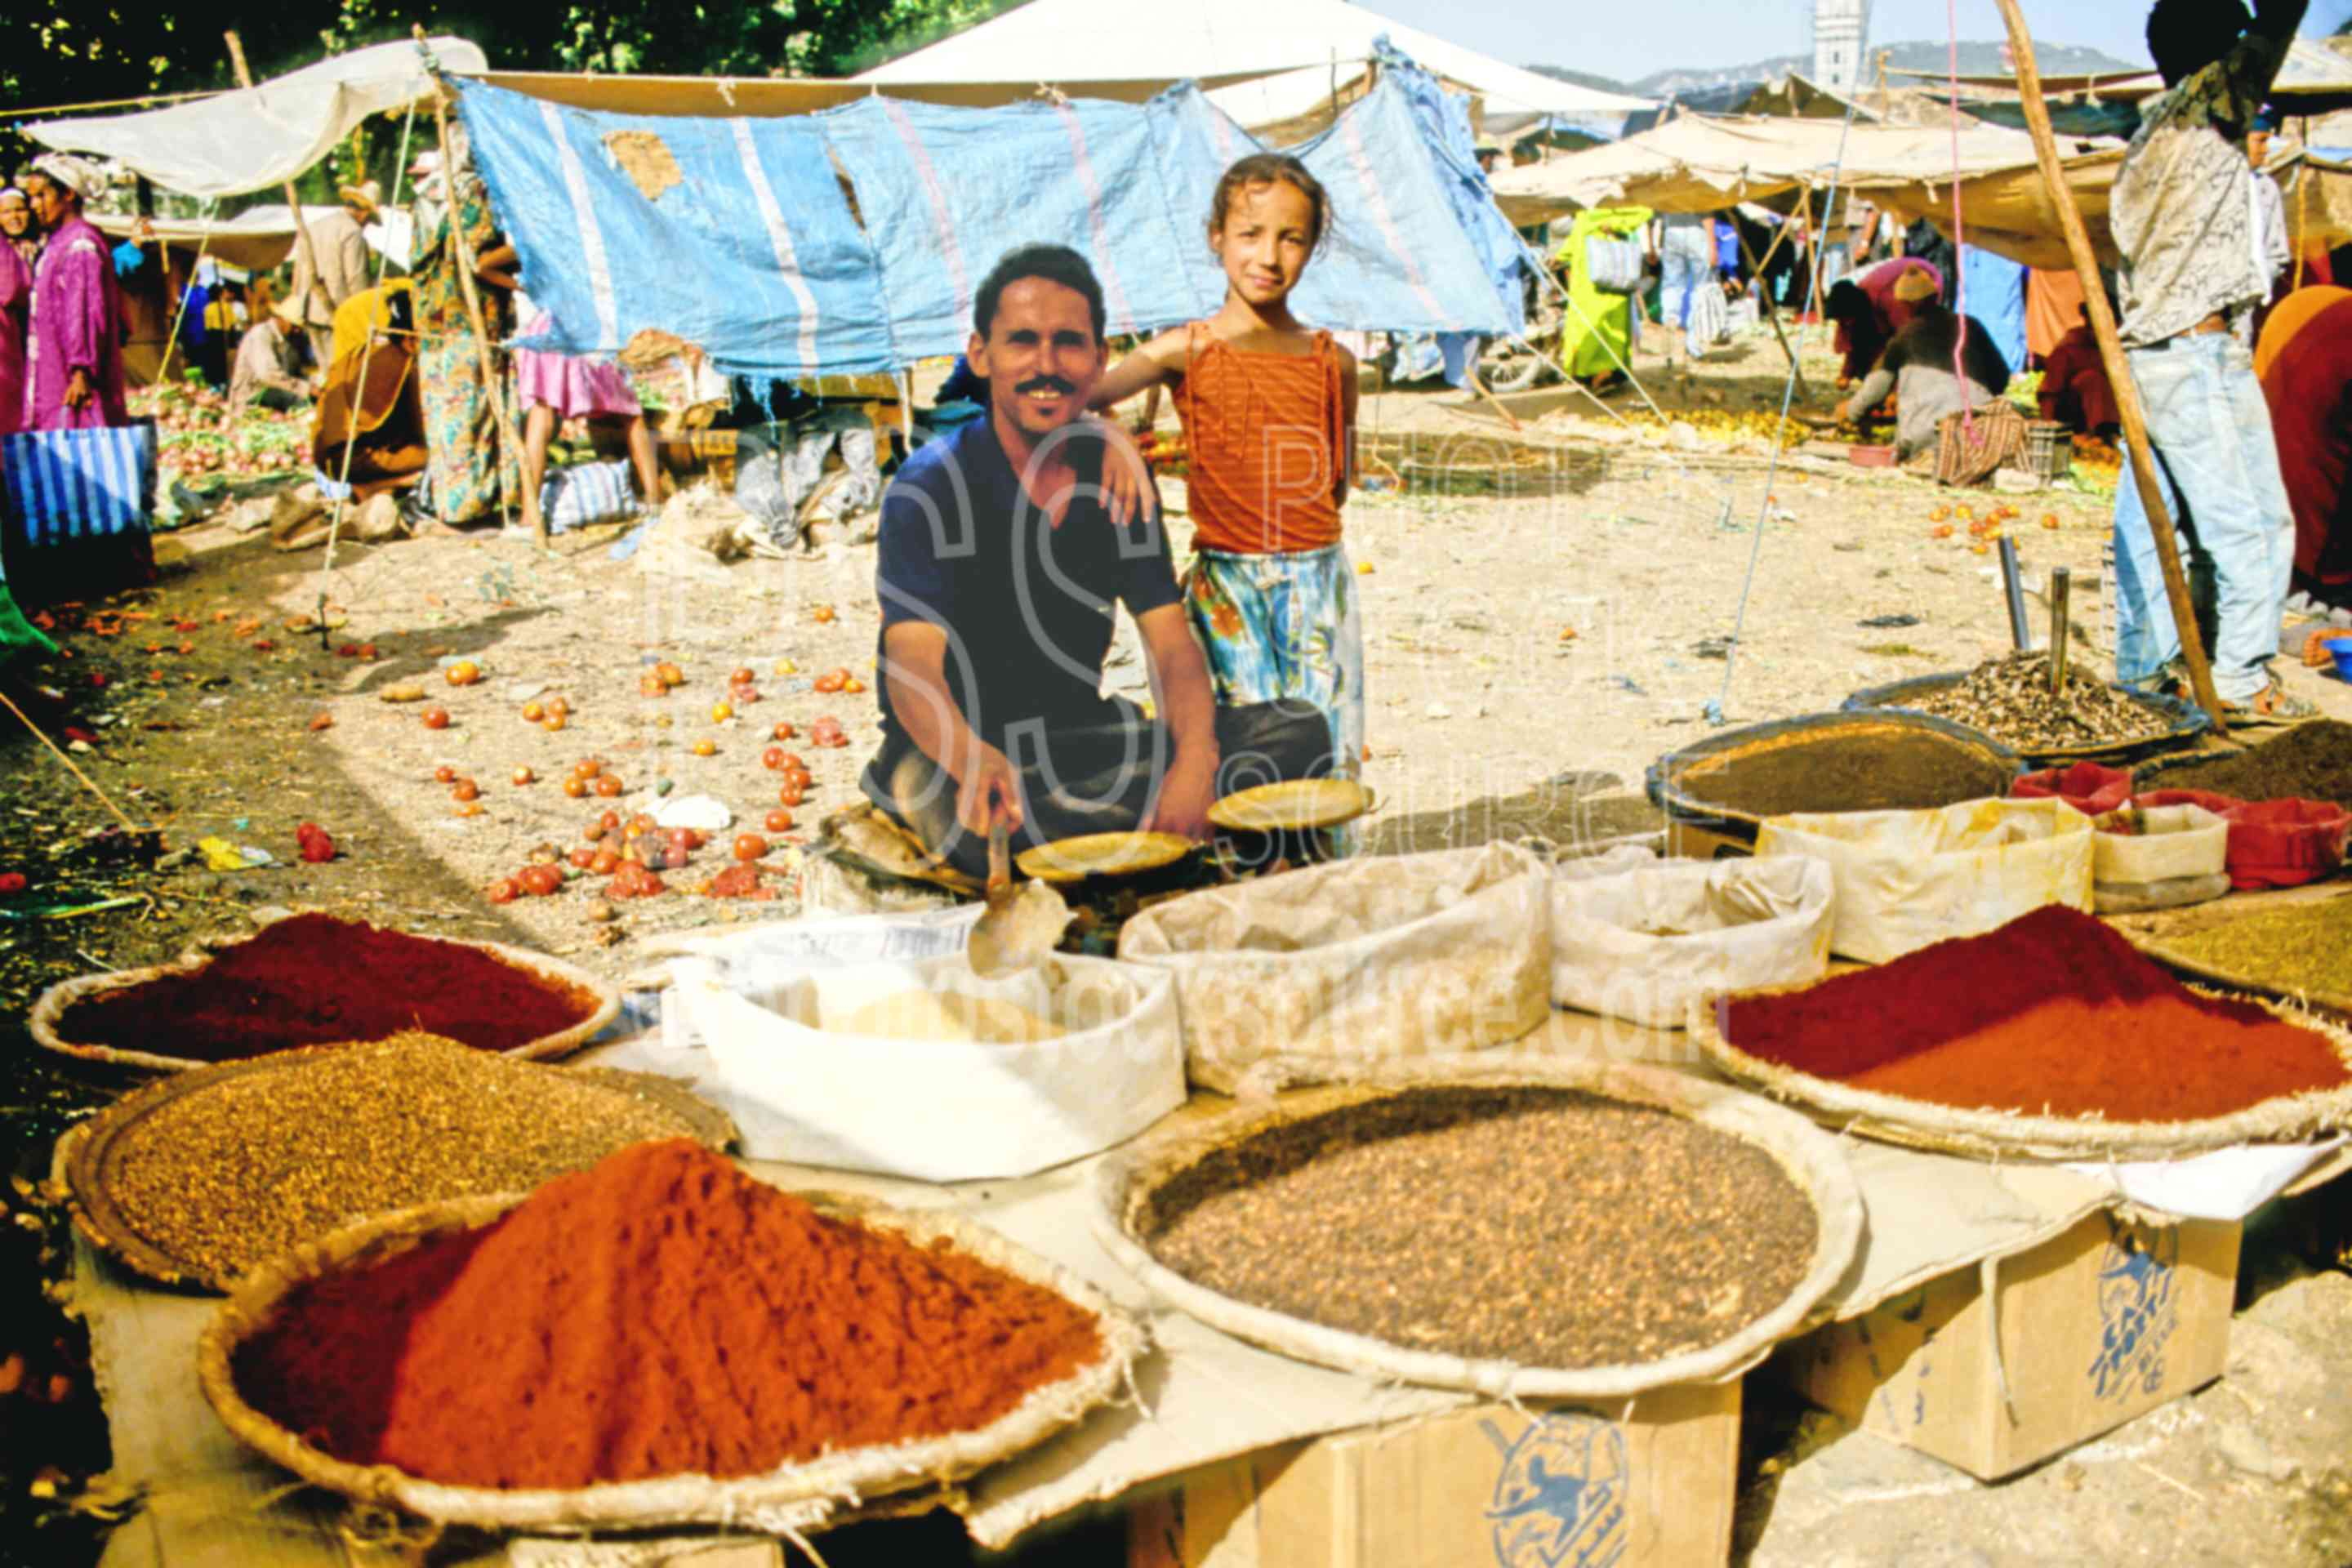 Spice Sellers,child,daughter,father,mans,market,sell,spice,morocco markets,children